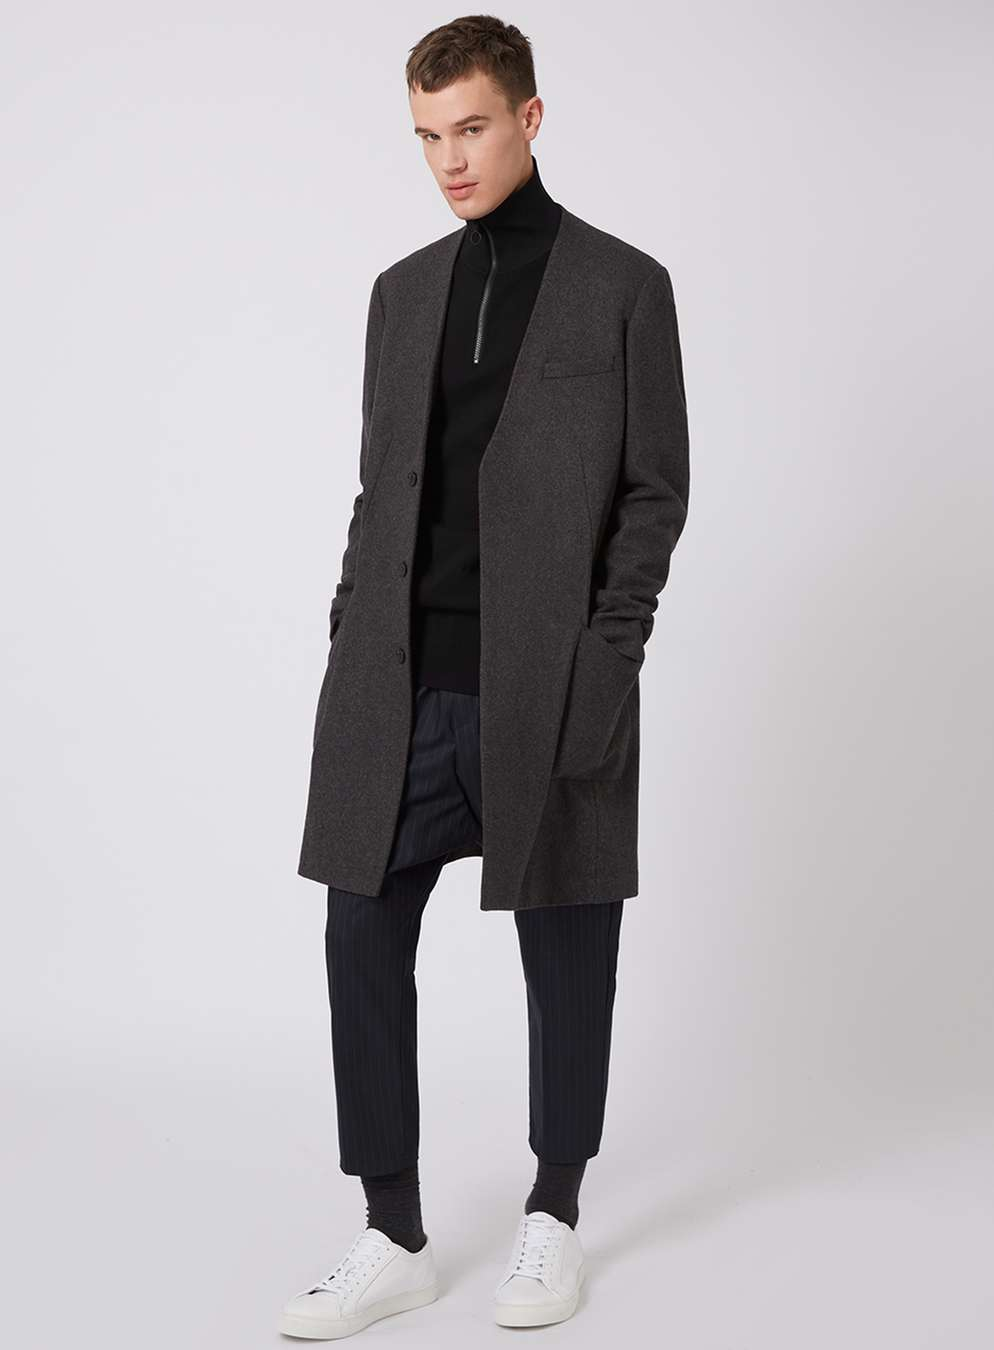 LUX wool-blend duster coat ,  £120   LUX funnel neck jumper , £40  LUX   pinstripe cropped trousers ,  £40